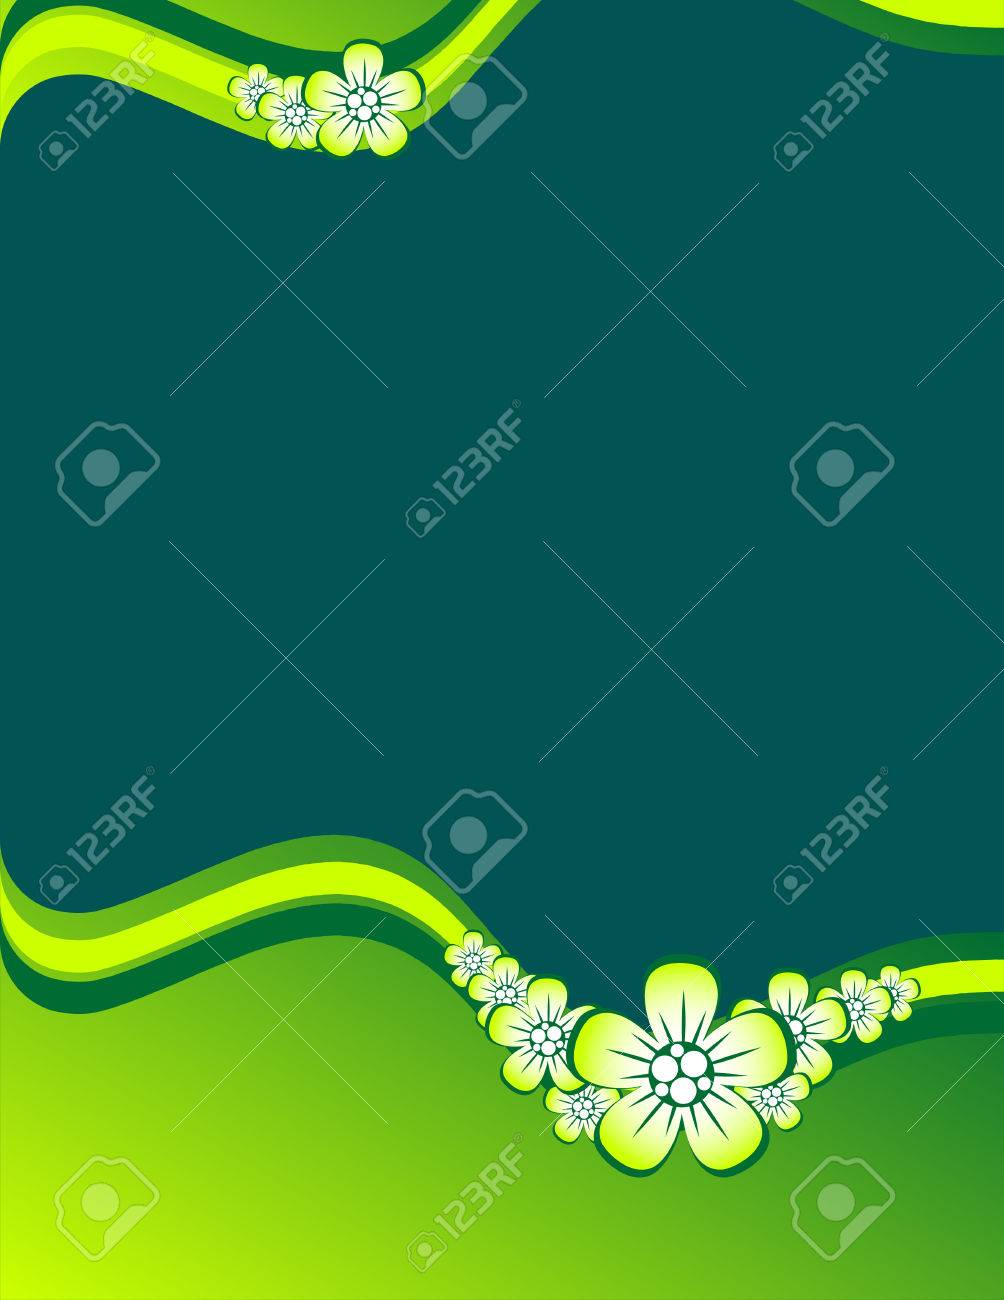 Floral background Stock Vector - 5755778